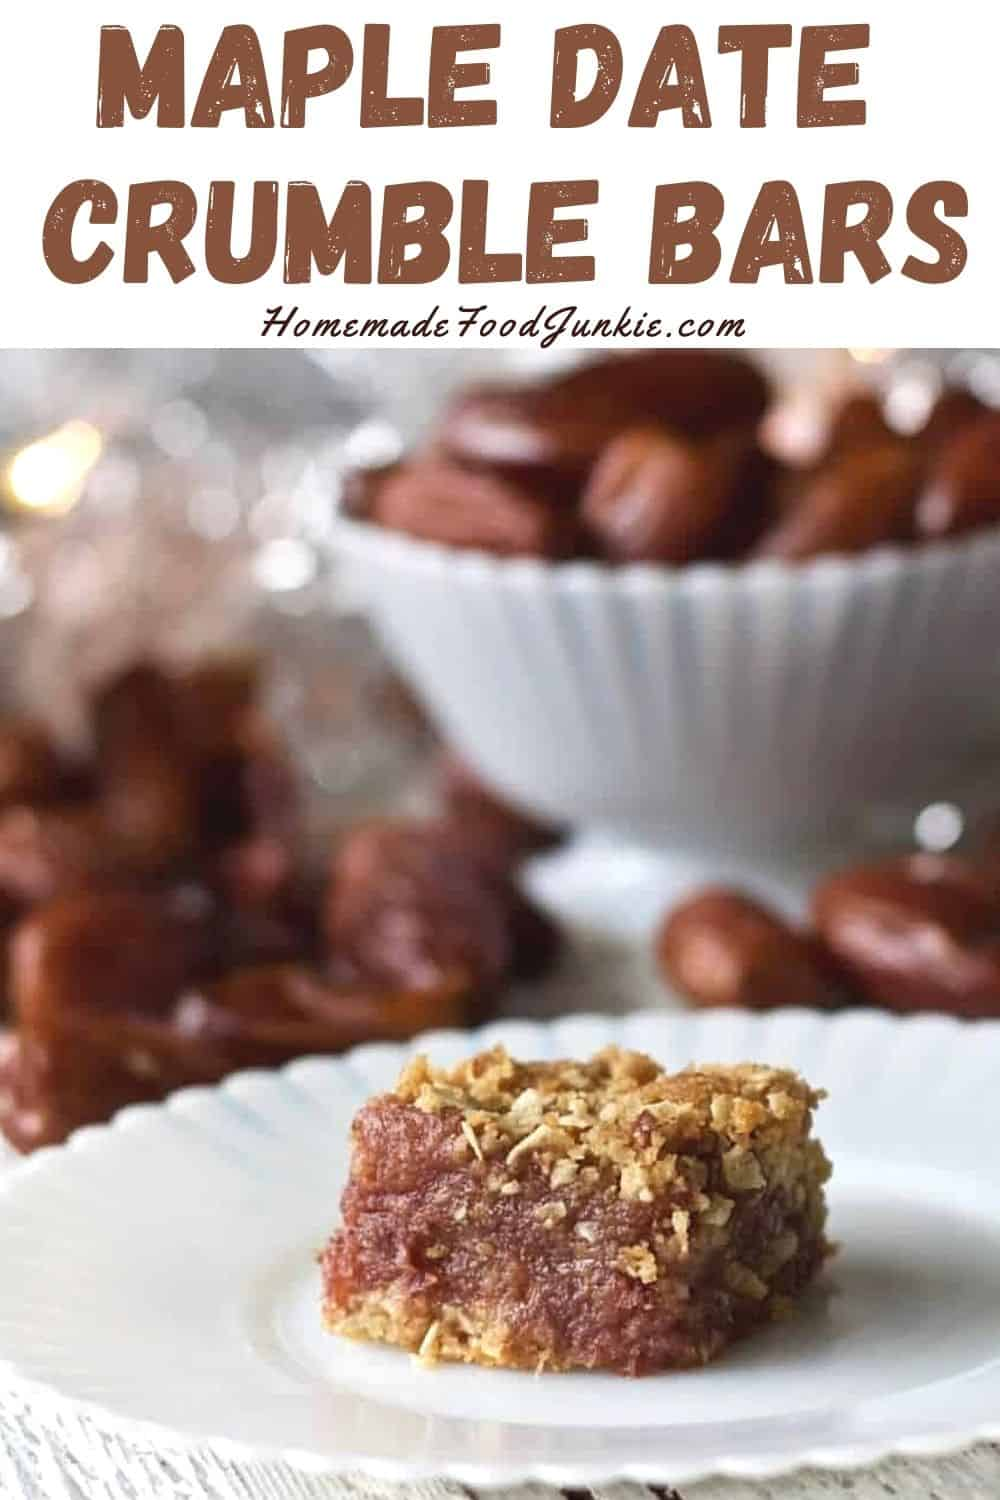 Maple date crumble bars-pin image